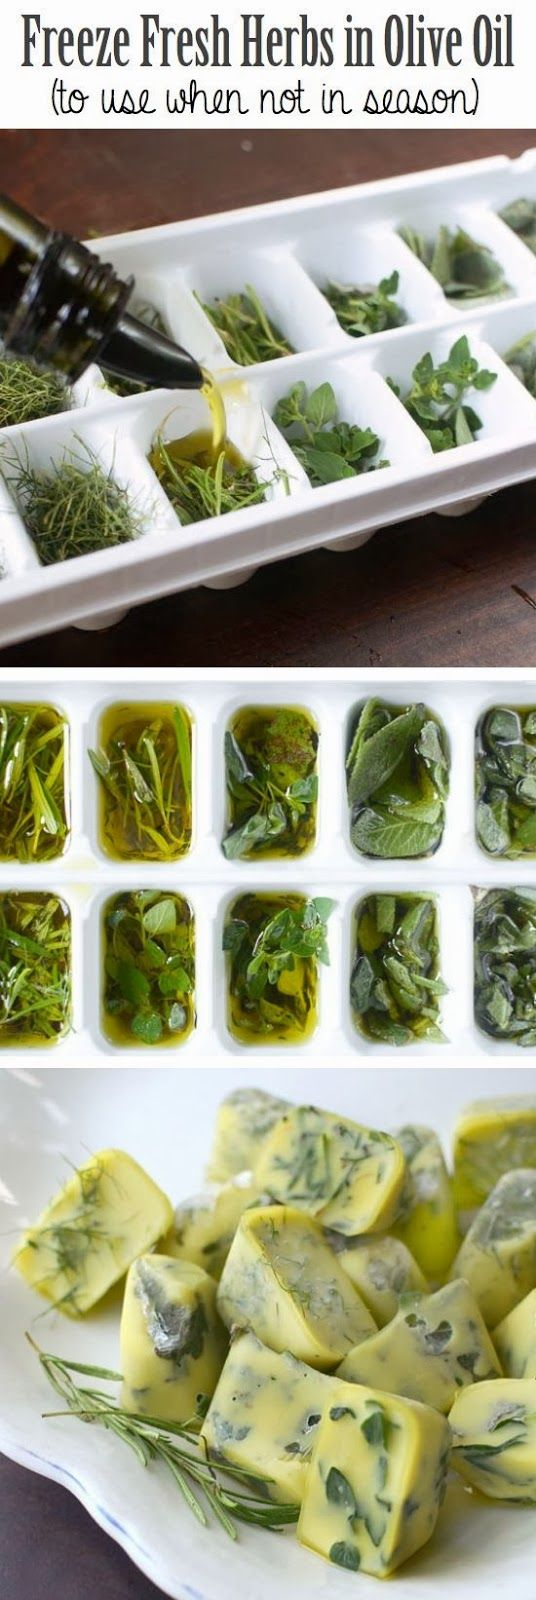 My Virtual Spice Rack: DIY Olive Oil and Herb Flavor Cubes